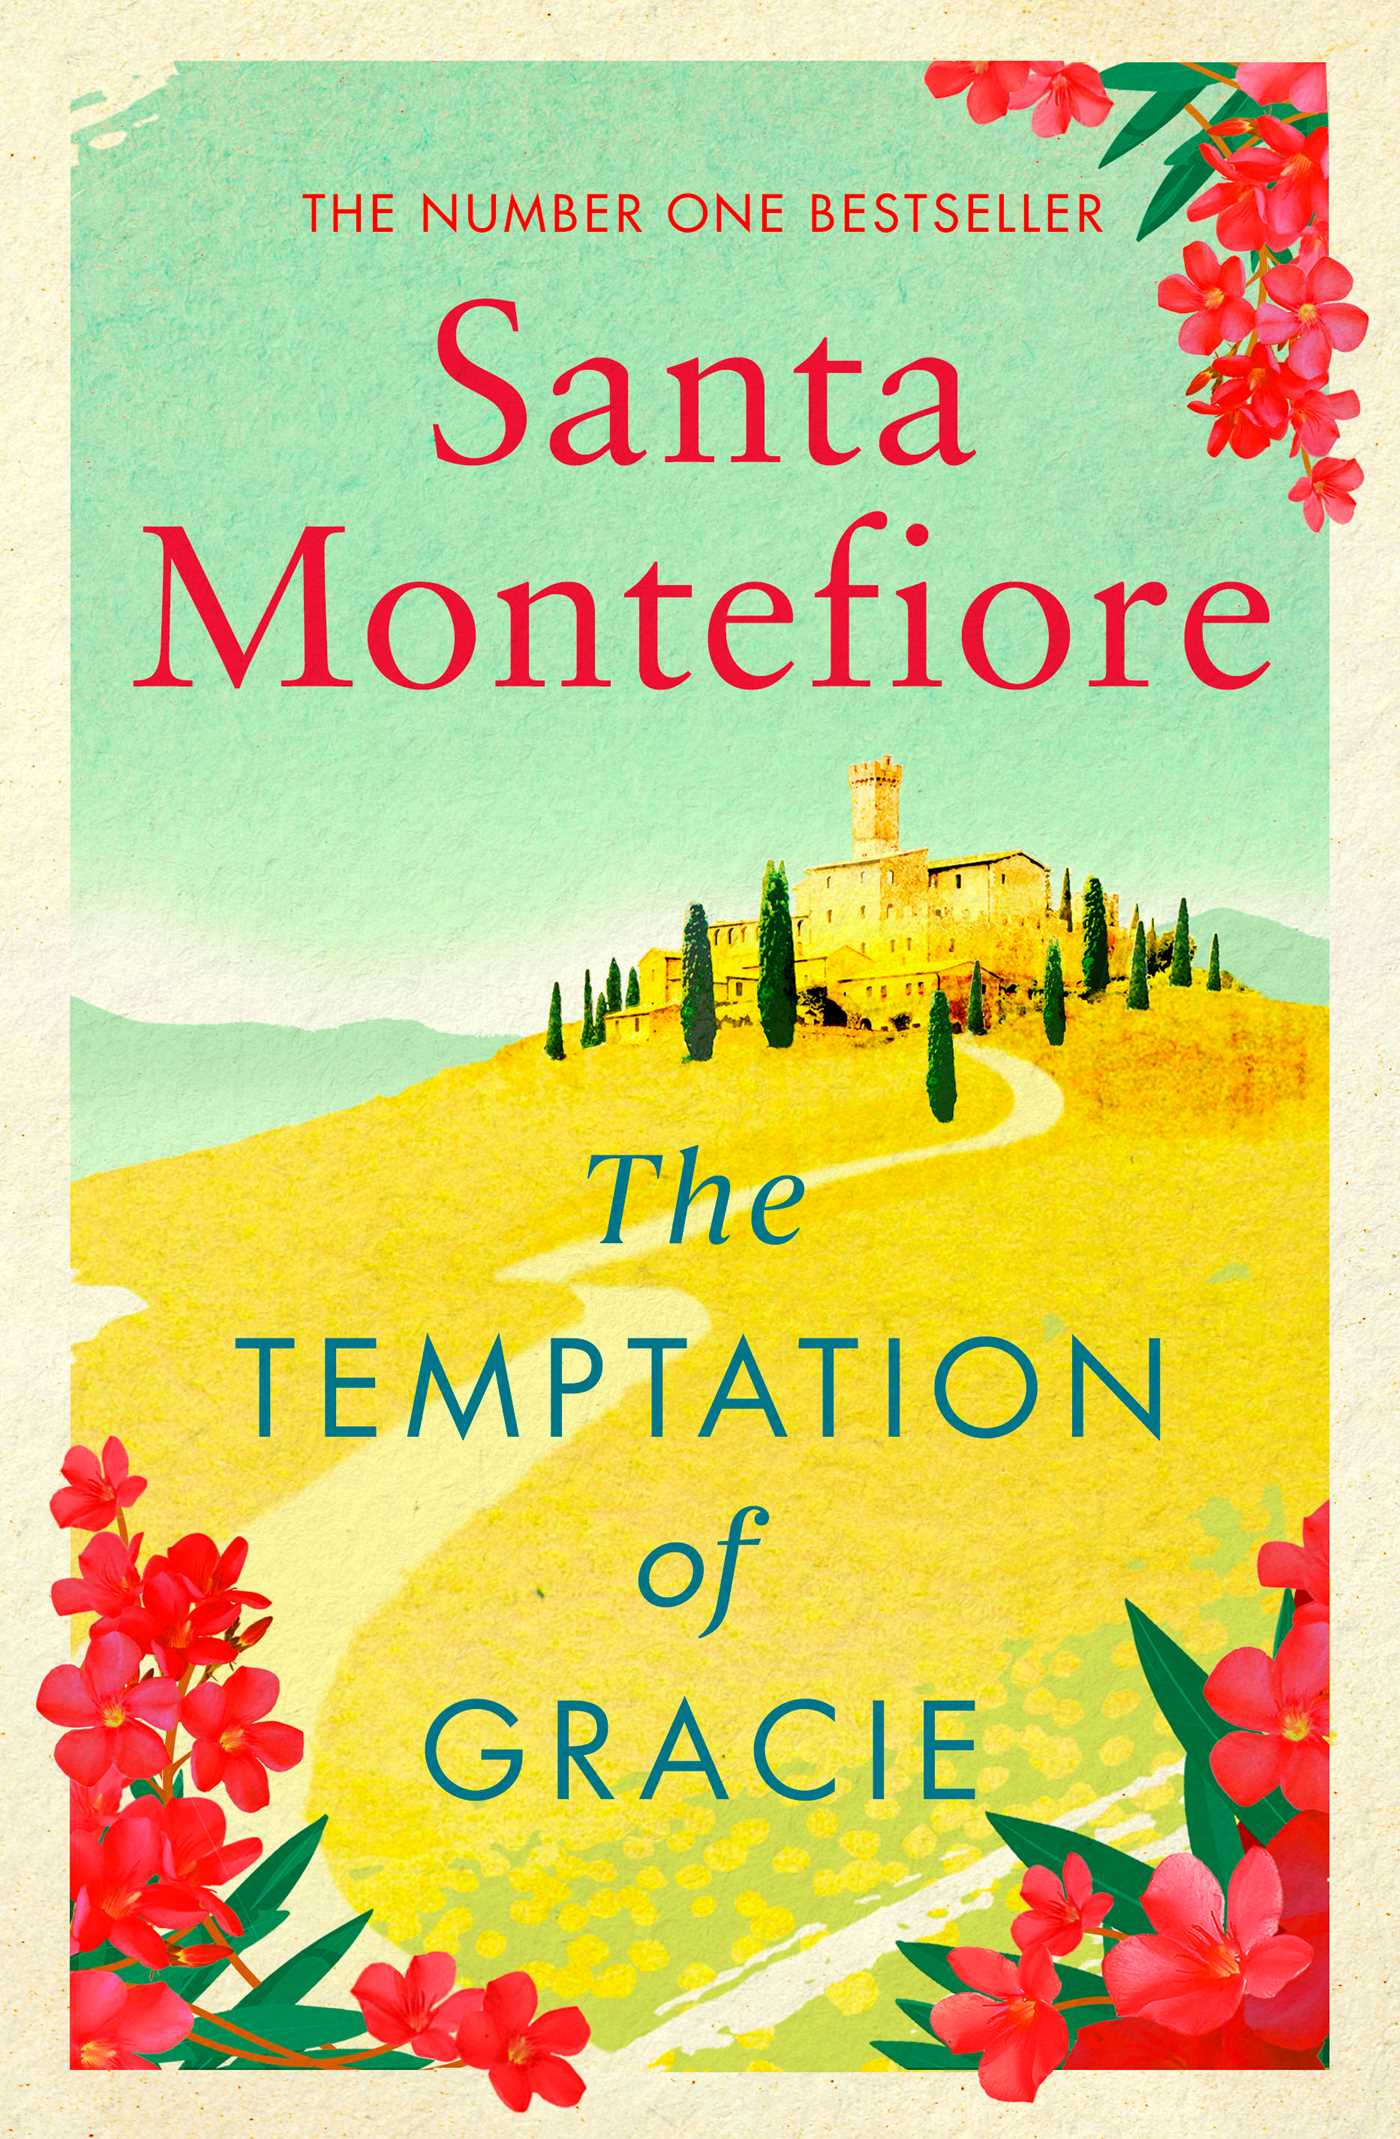 The temptation of gracie 9781471169588 hr